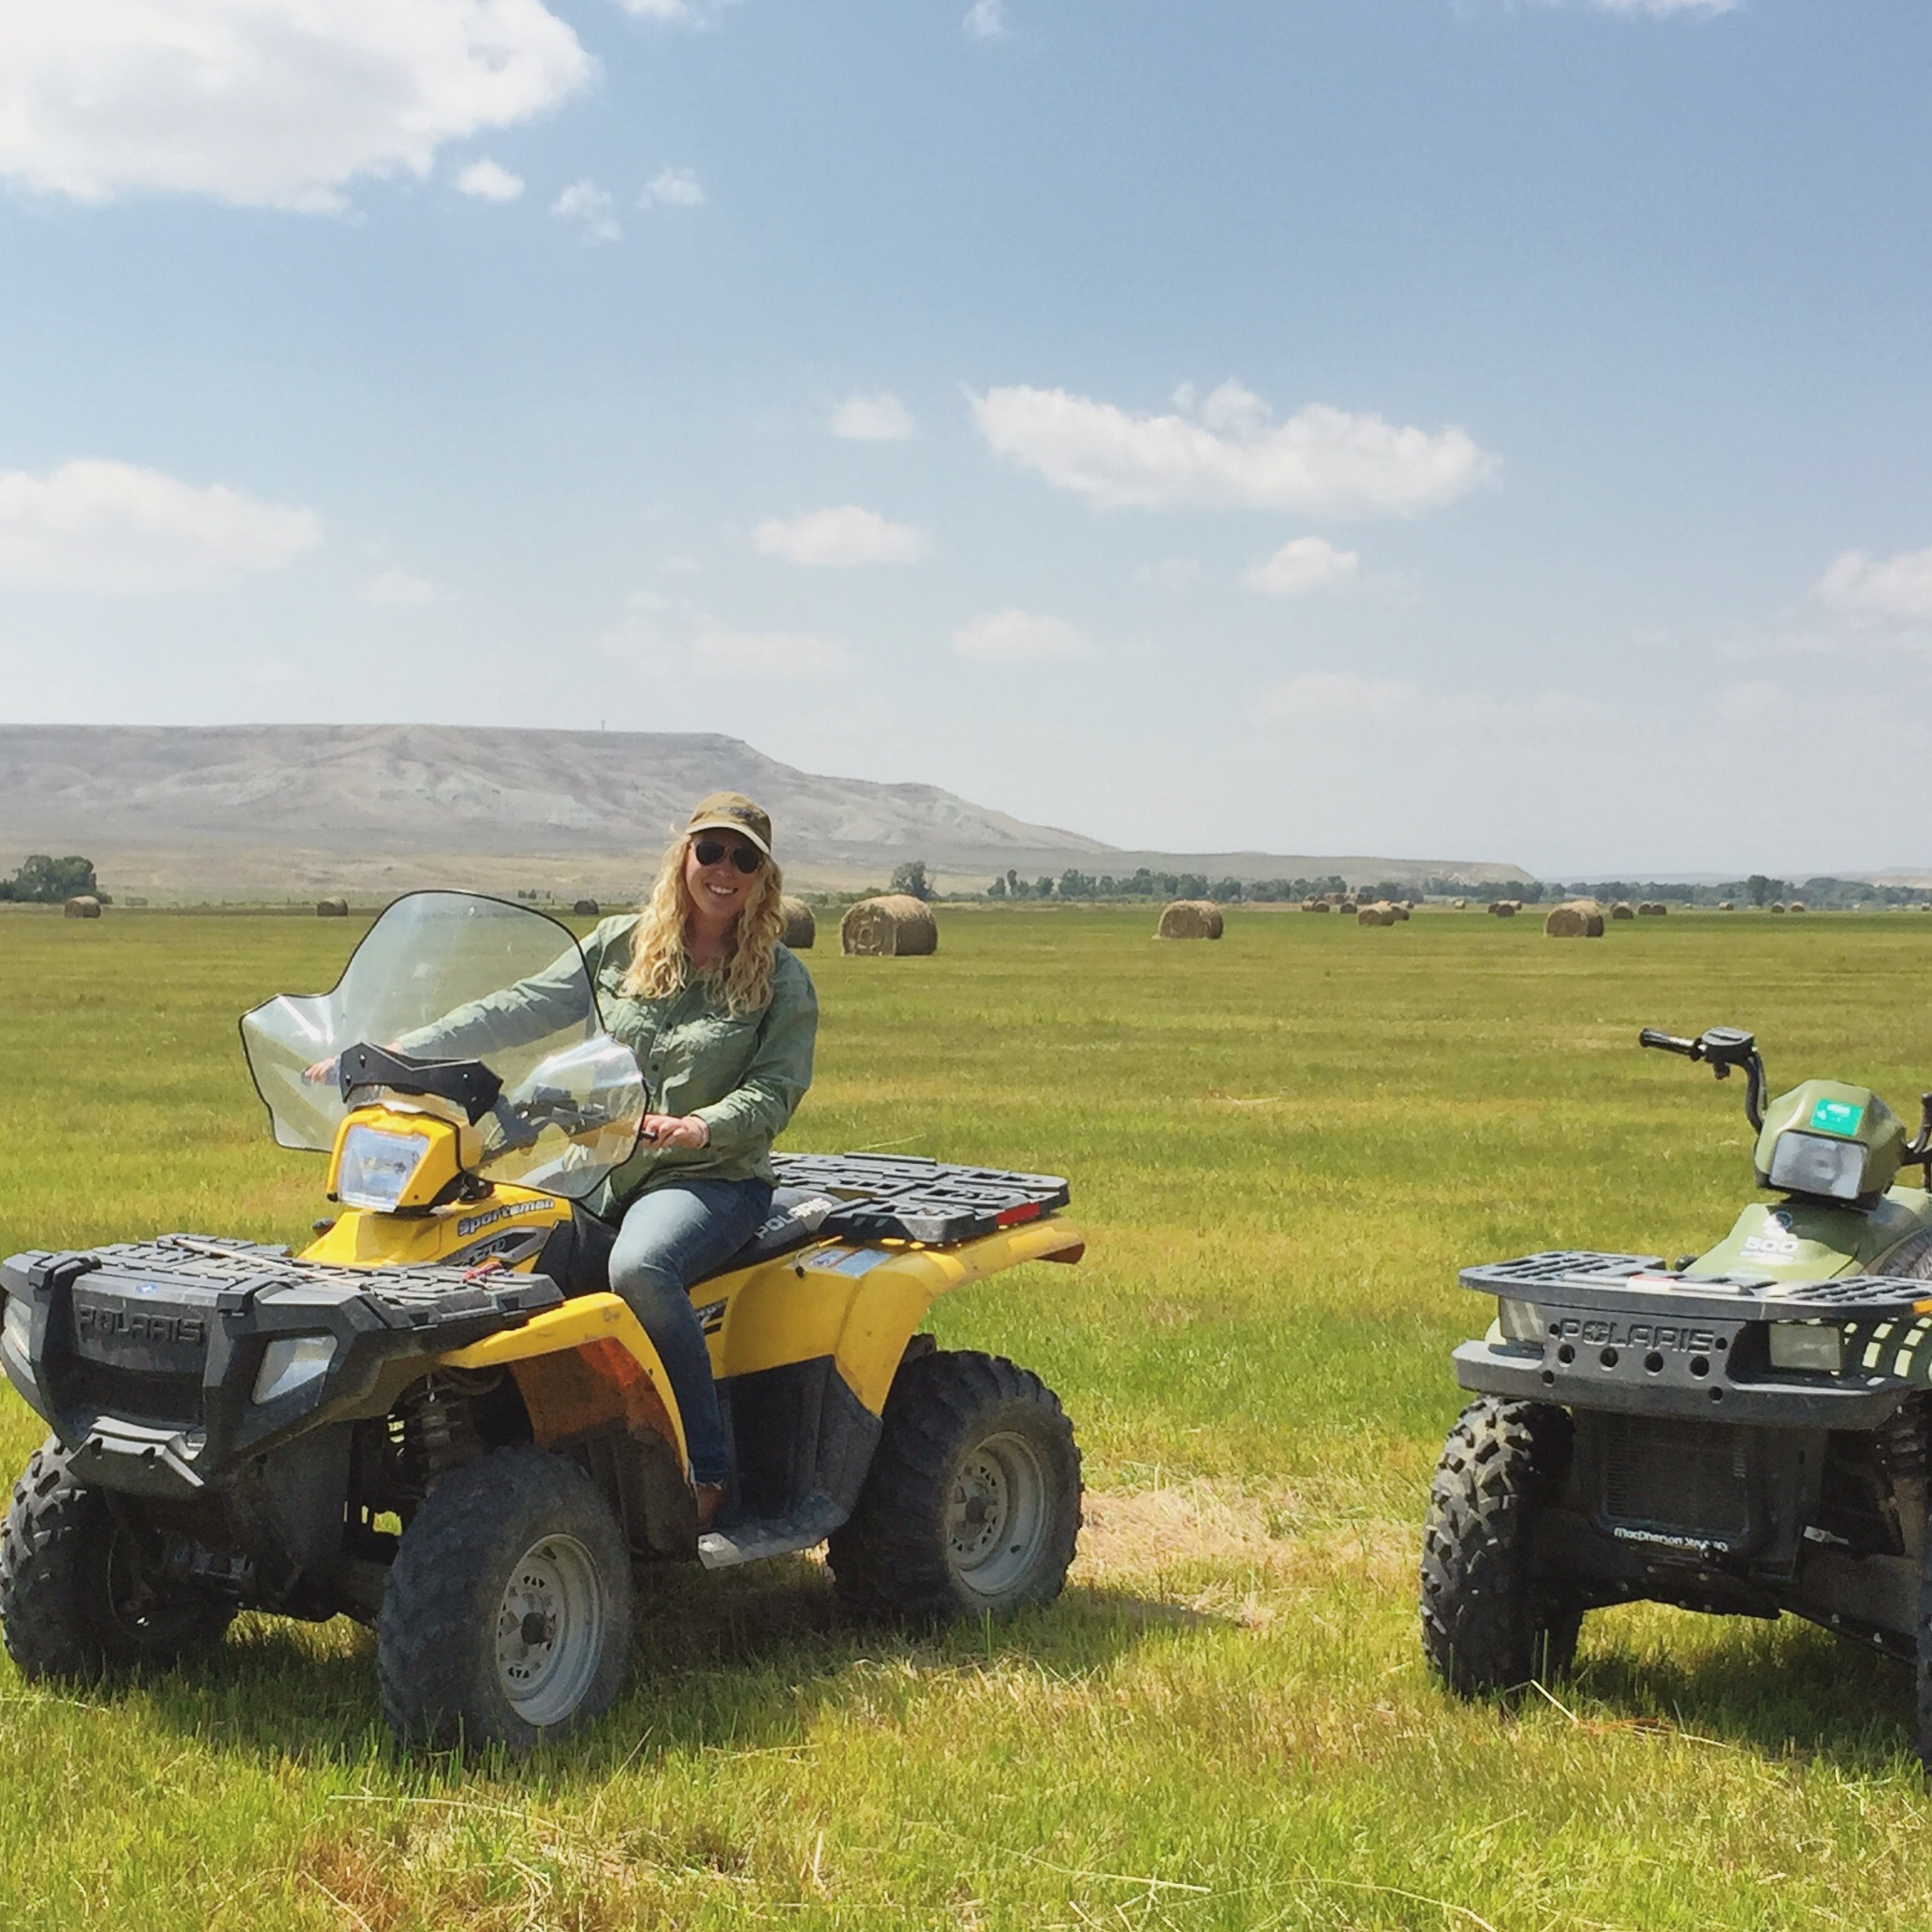 Touring a ranch in Sublette County, Wyoming